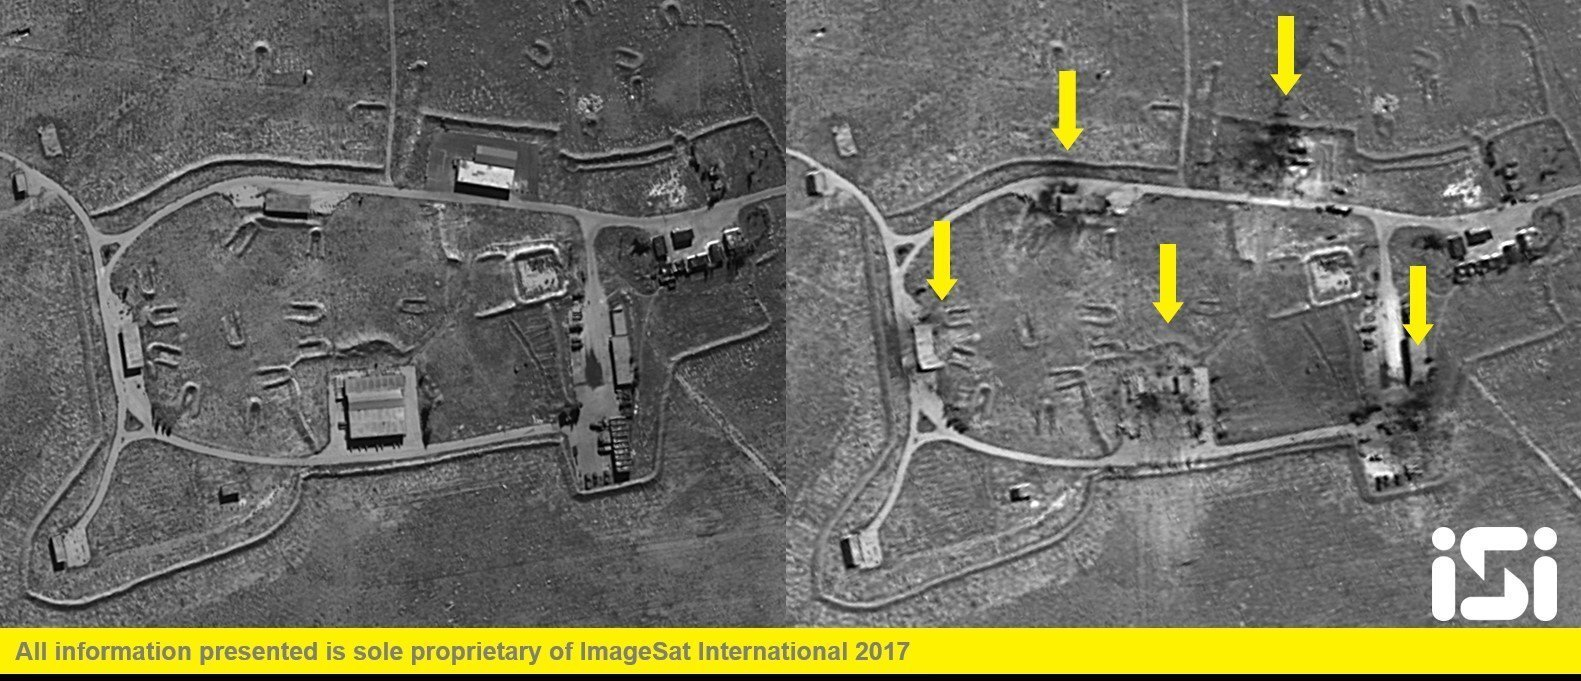 Photos: Satellite images show before, after US strikes on Syrianbase